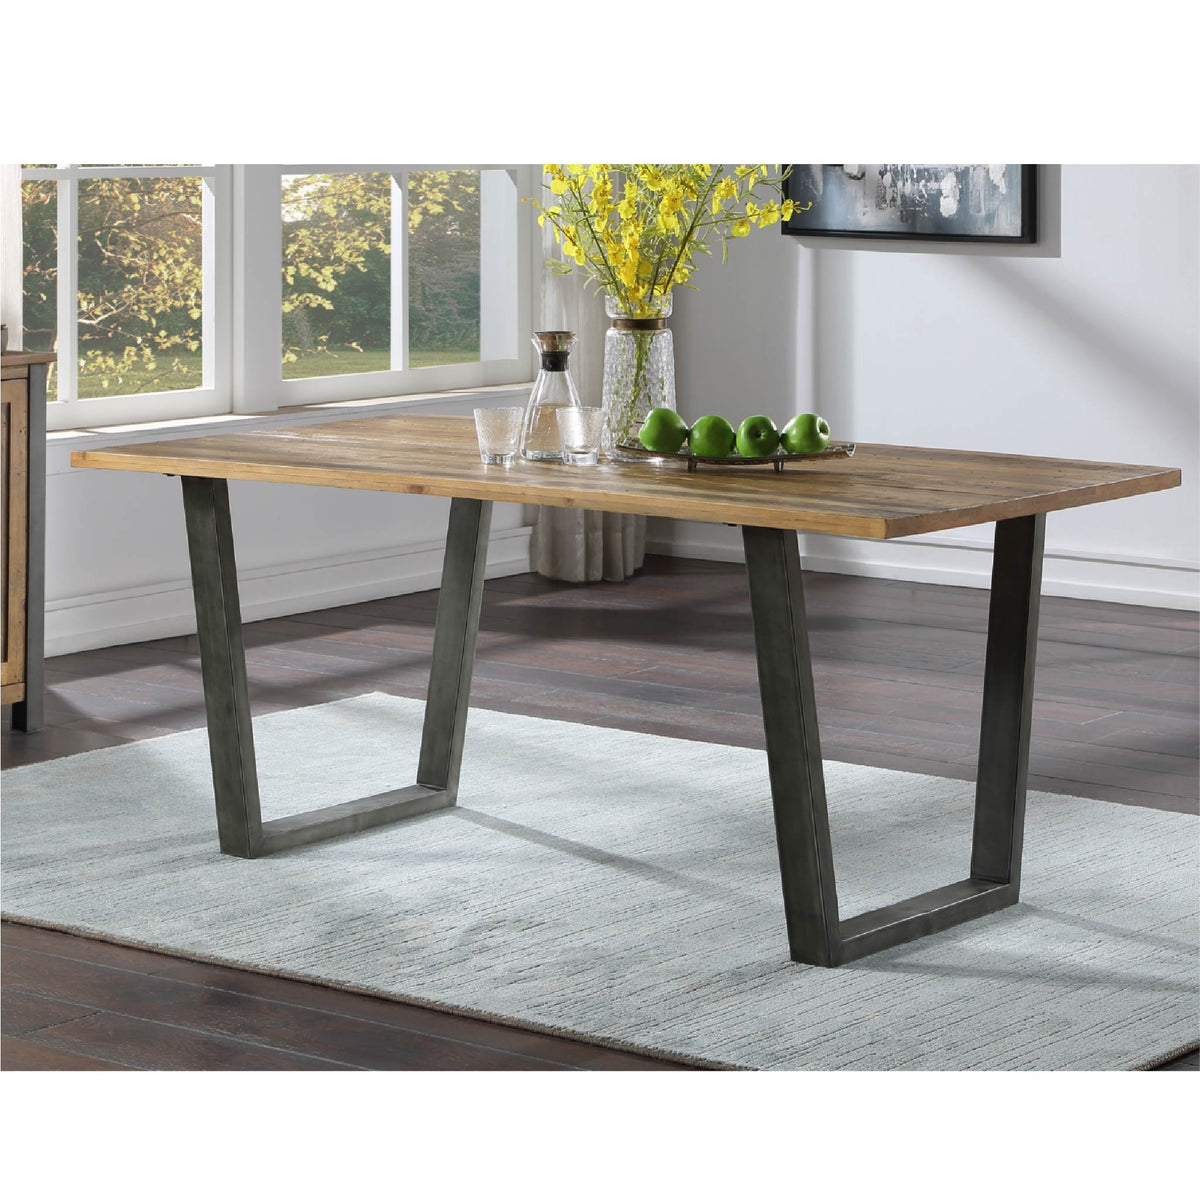 Urban Elegance Reclaimed Wood Dining Table